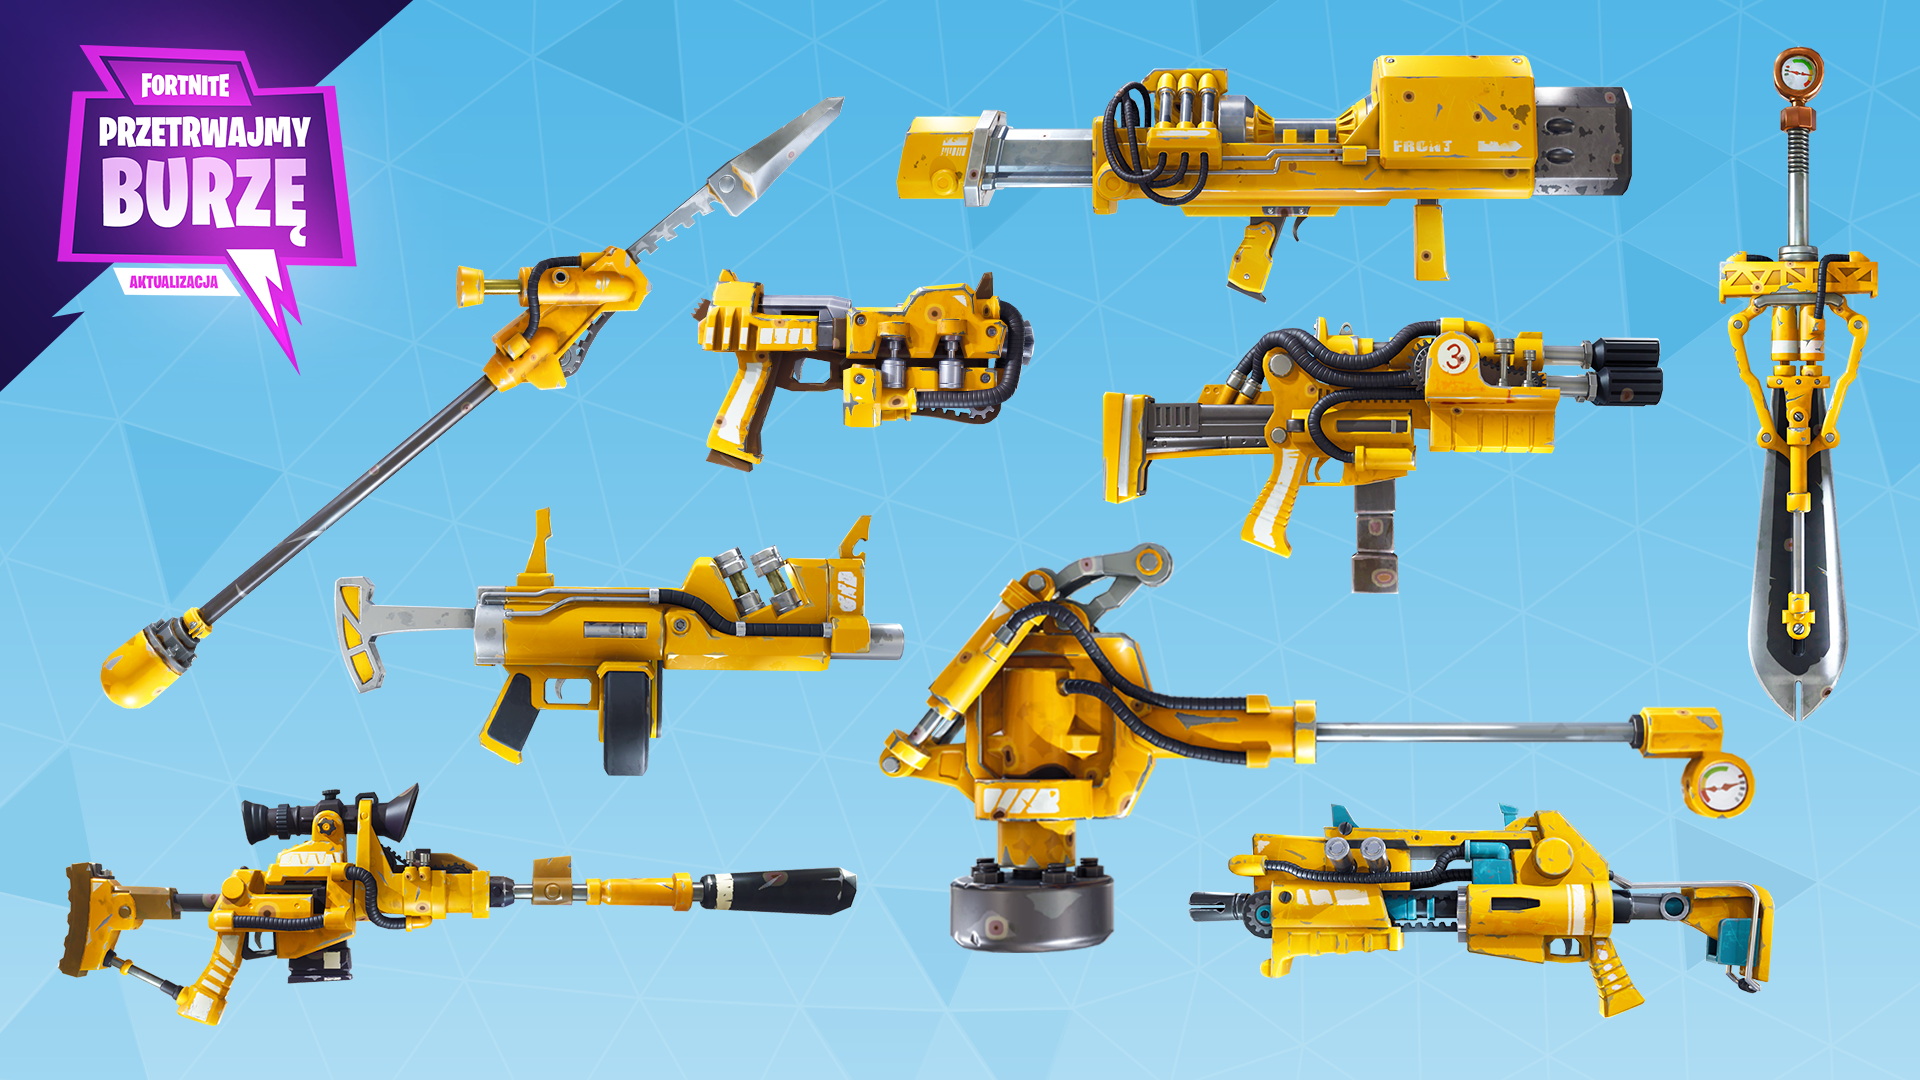 Fortnite%2Fblog%2Fsurvive-the-storm---release-notes%2FPL_Hydraulic-Weapons-1920x1080-e8e8f1e3a209172706a45f09ad5f8184b9ae9fe0